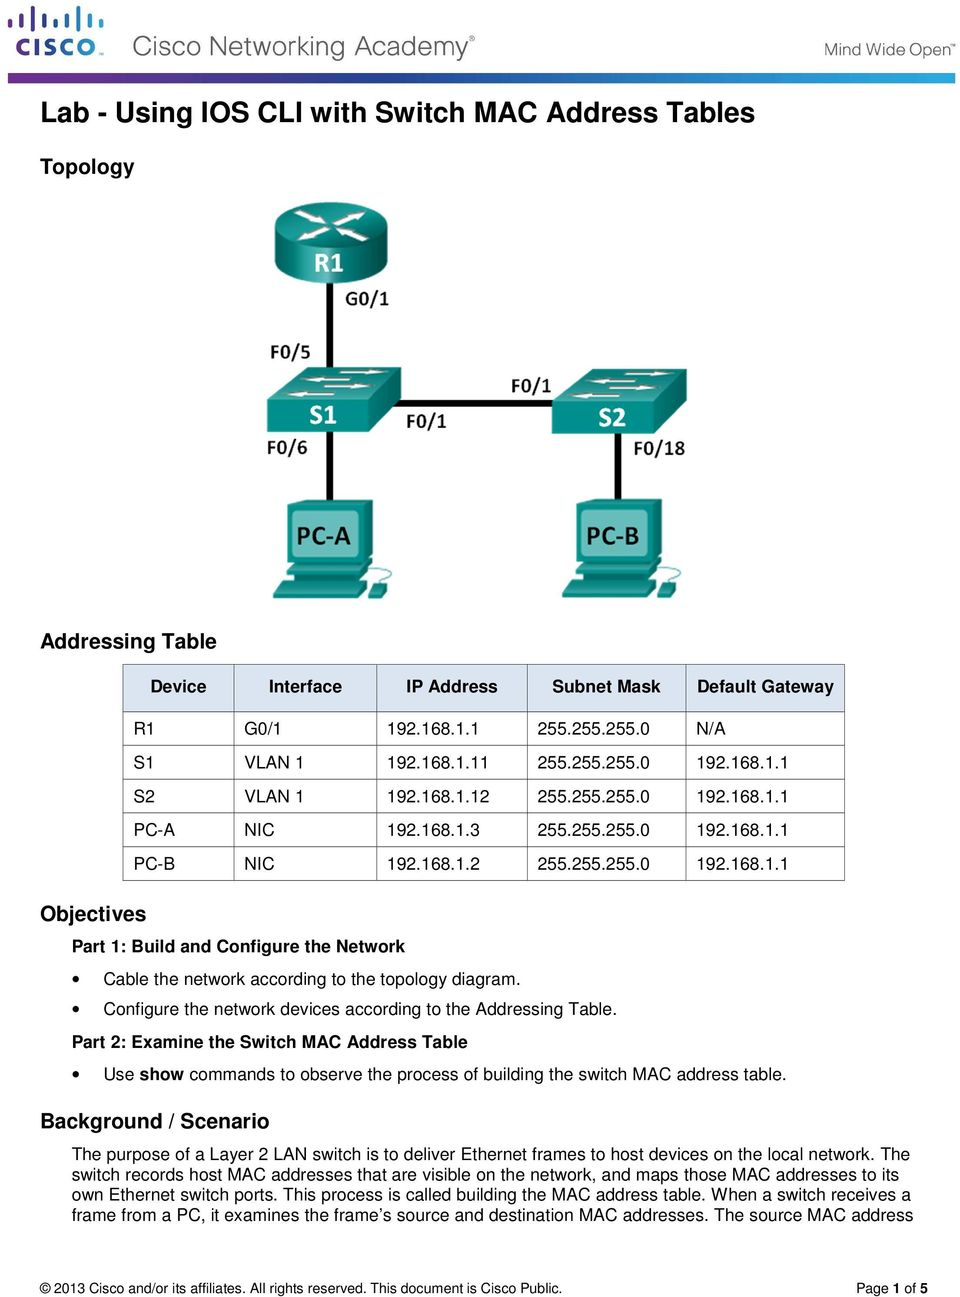 mac address table building of switch